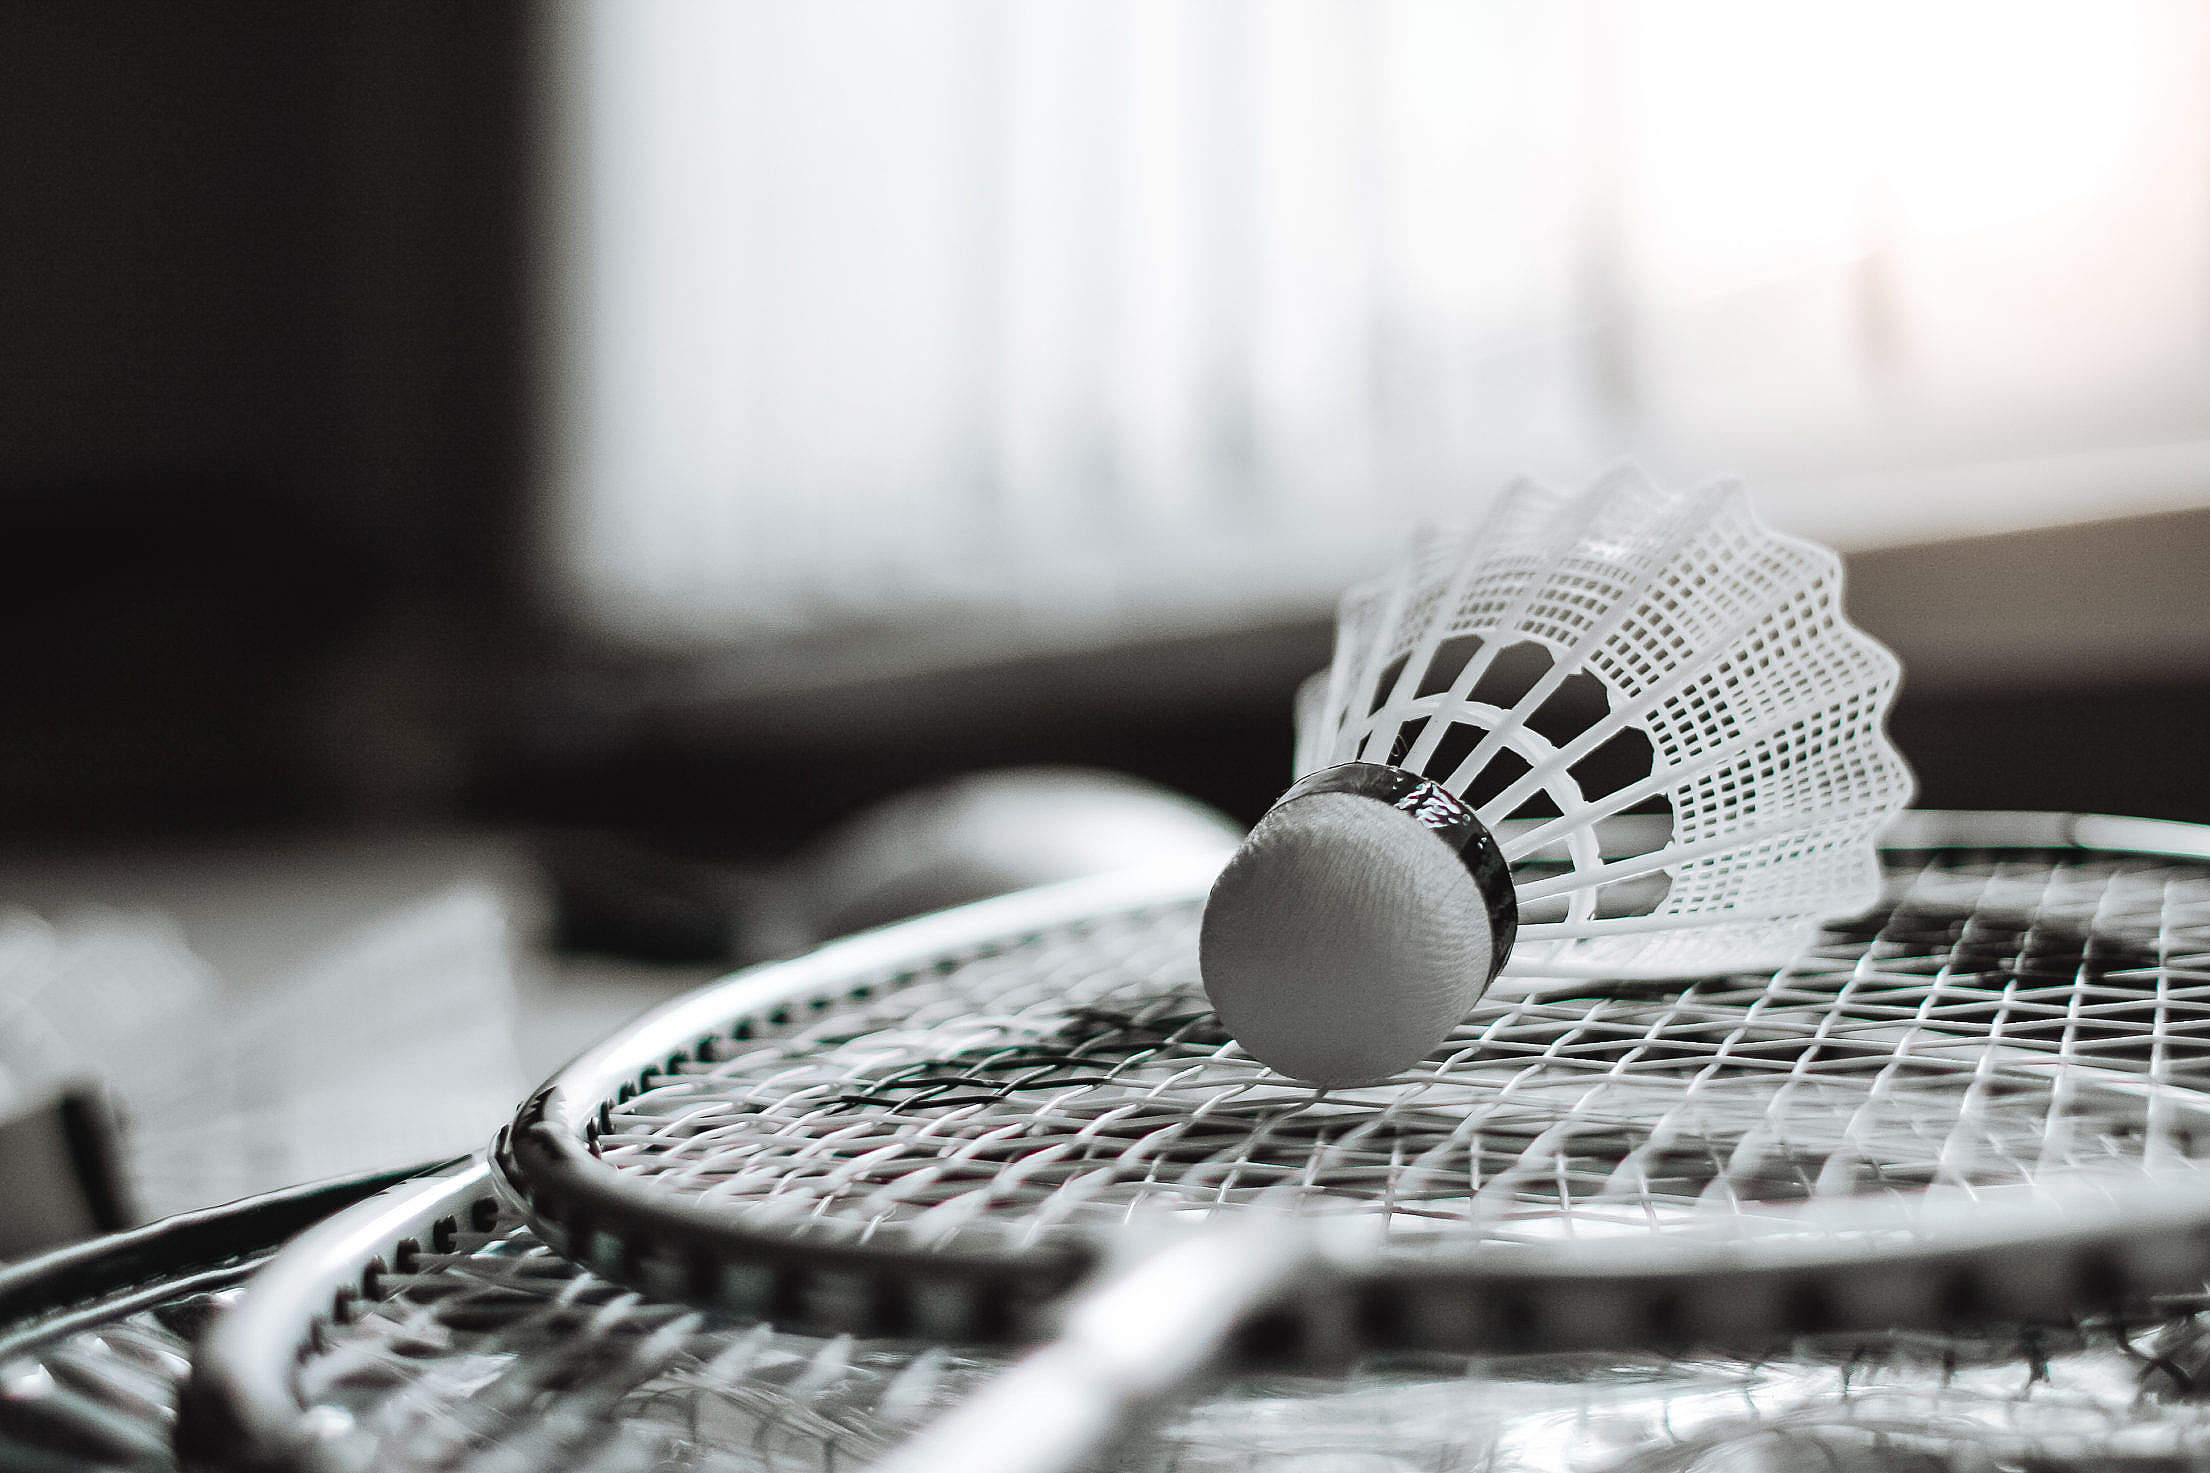 Badminton Racket and Shuttlecock Free Stock Photo